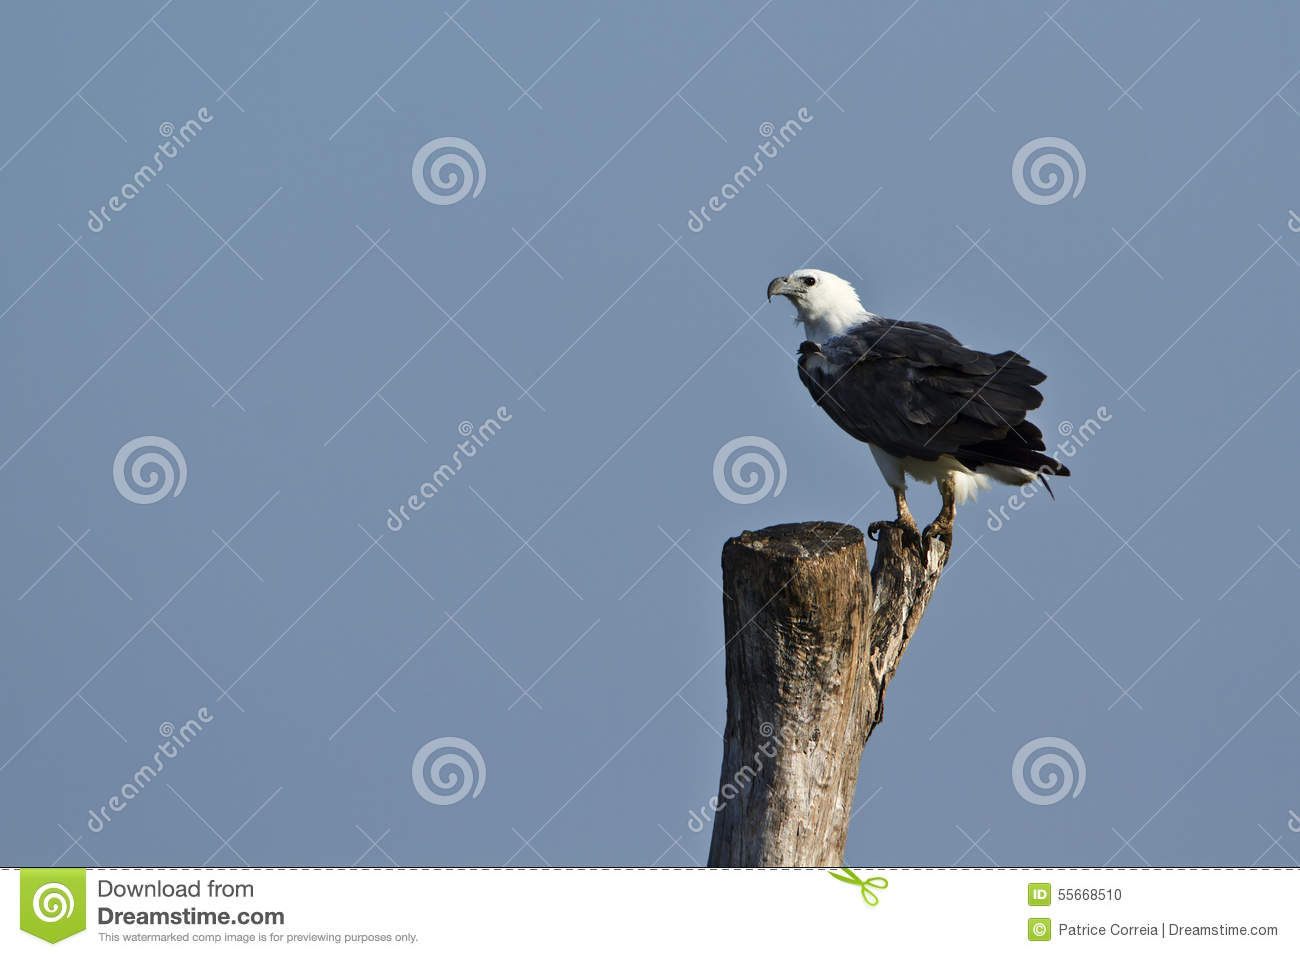 White-bellied Sea Eagle clipart #5, Download drawings